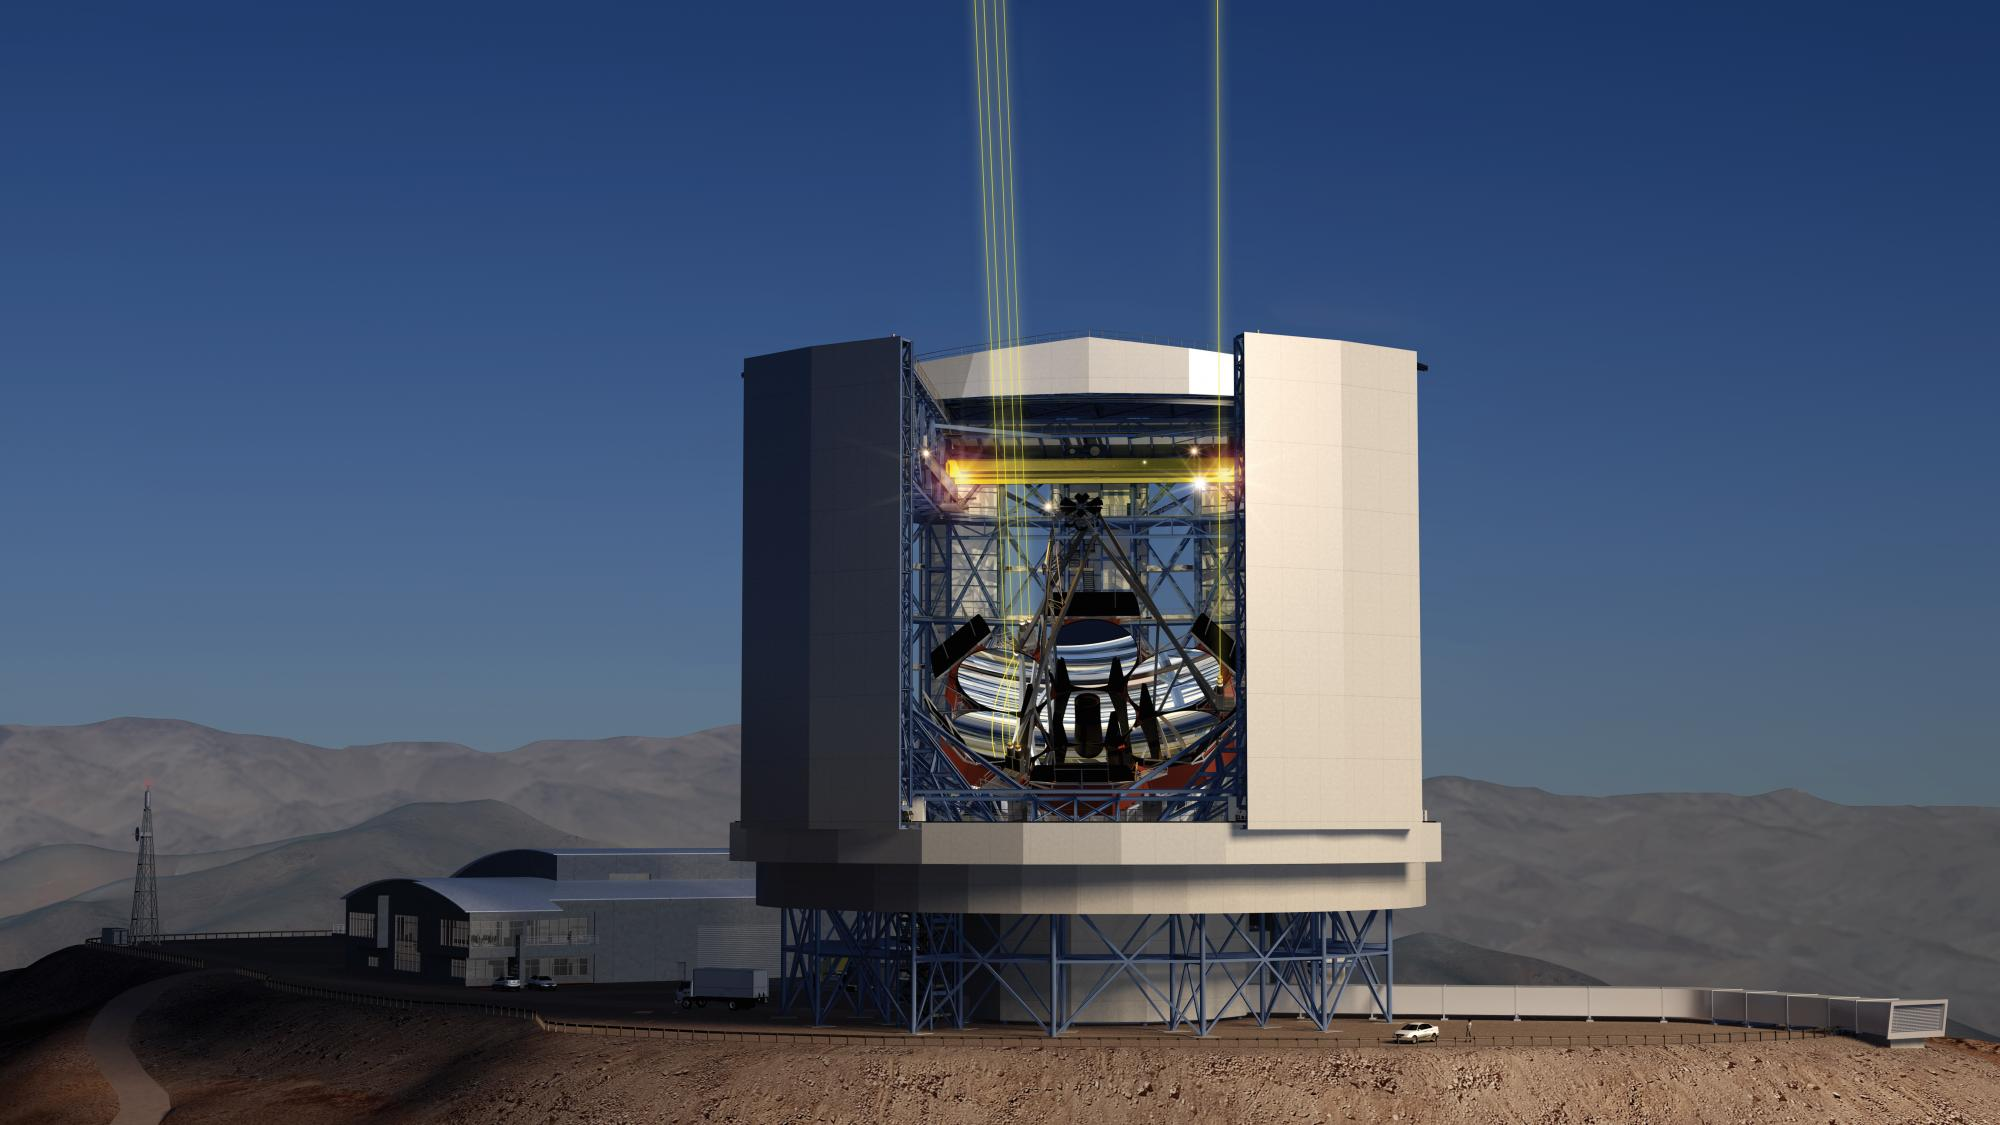 Once completed atop El Cerro Campanas in Chile's Atacama Desert, the Giant Magellan Telescope will use its higher-than-Hubble resolution power to solve some of the most pressing astronomical questions, including the search for planets that might harbor li